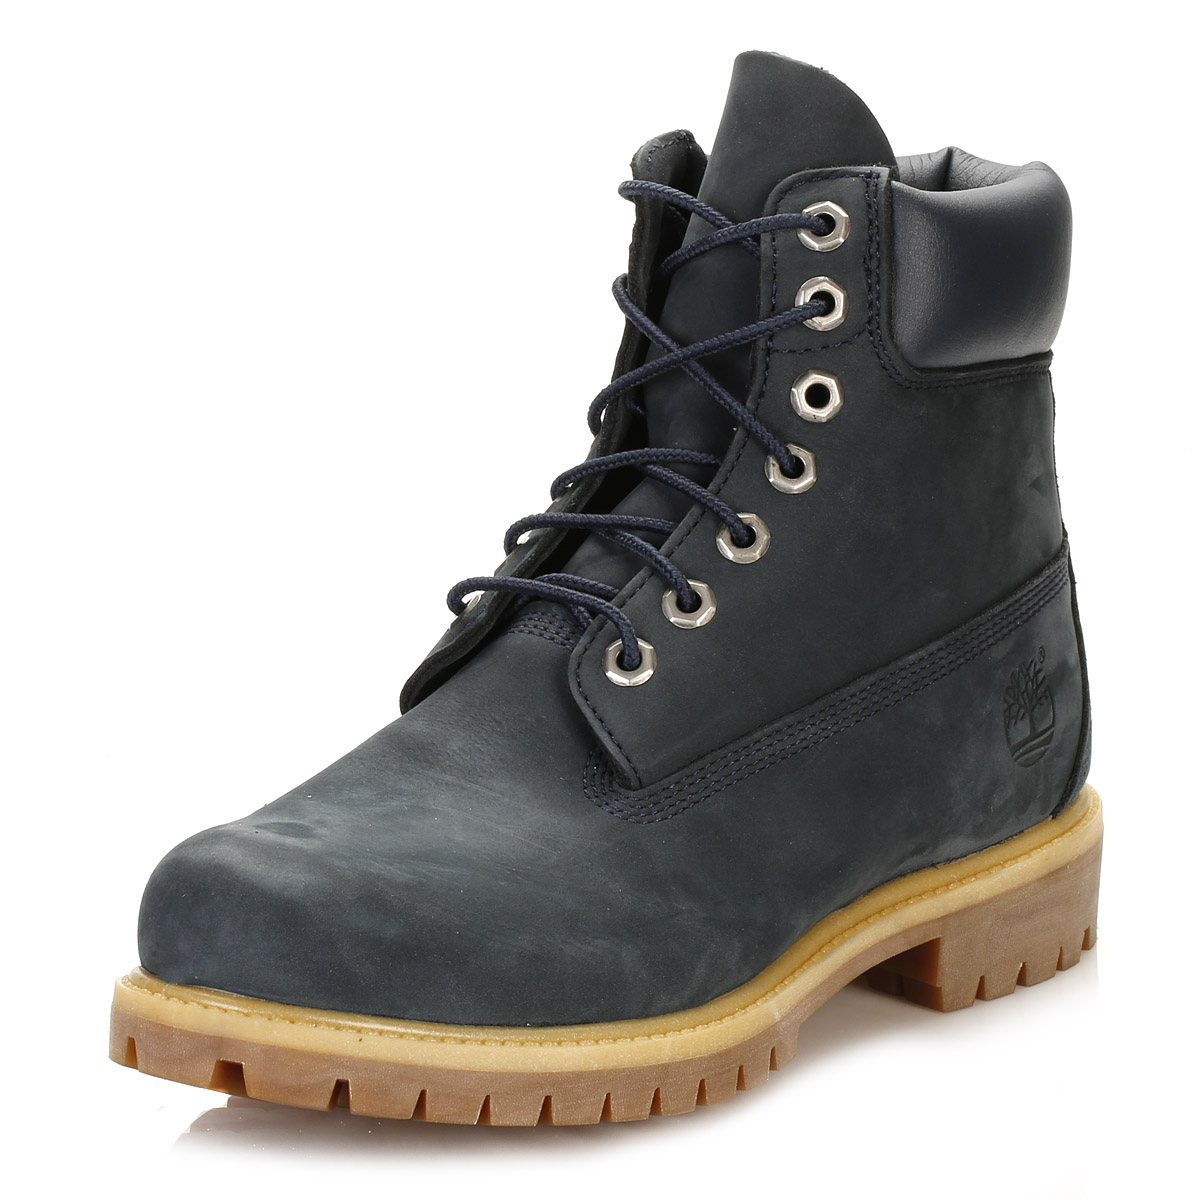 timberland mens classic boots 6 inch waterproof lace up